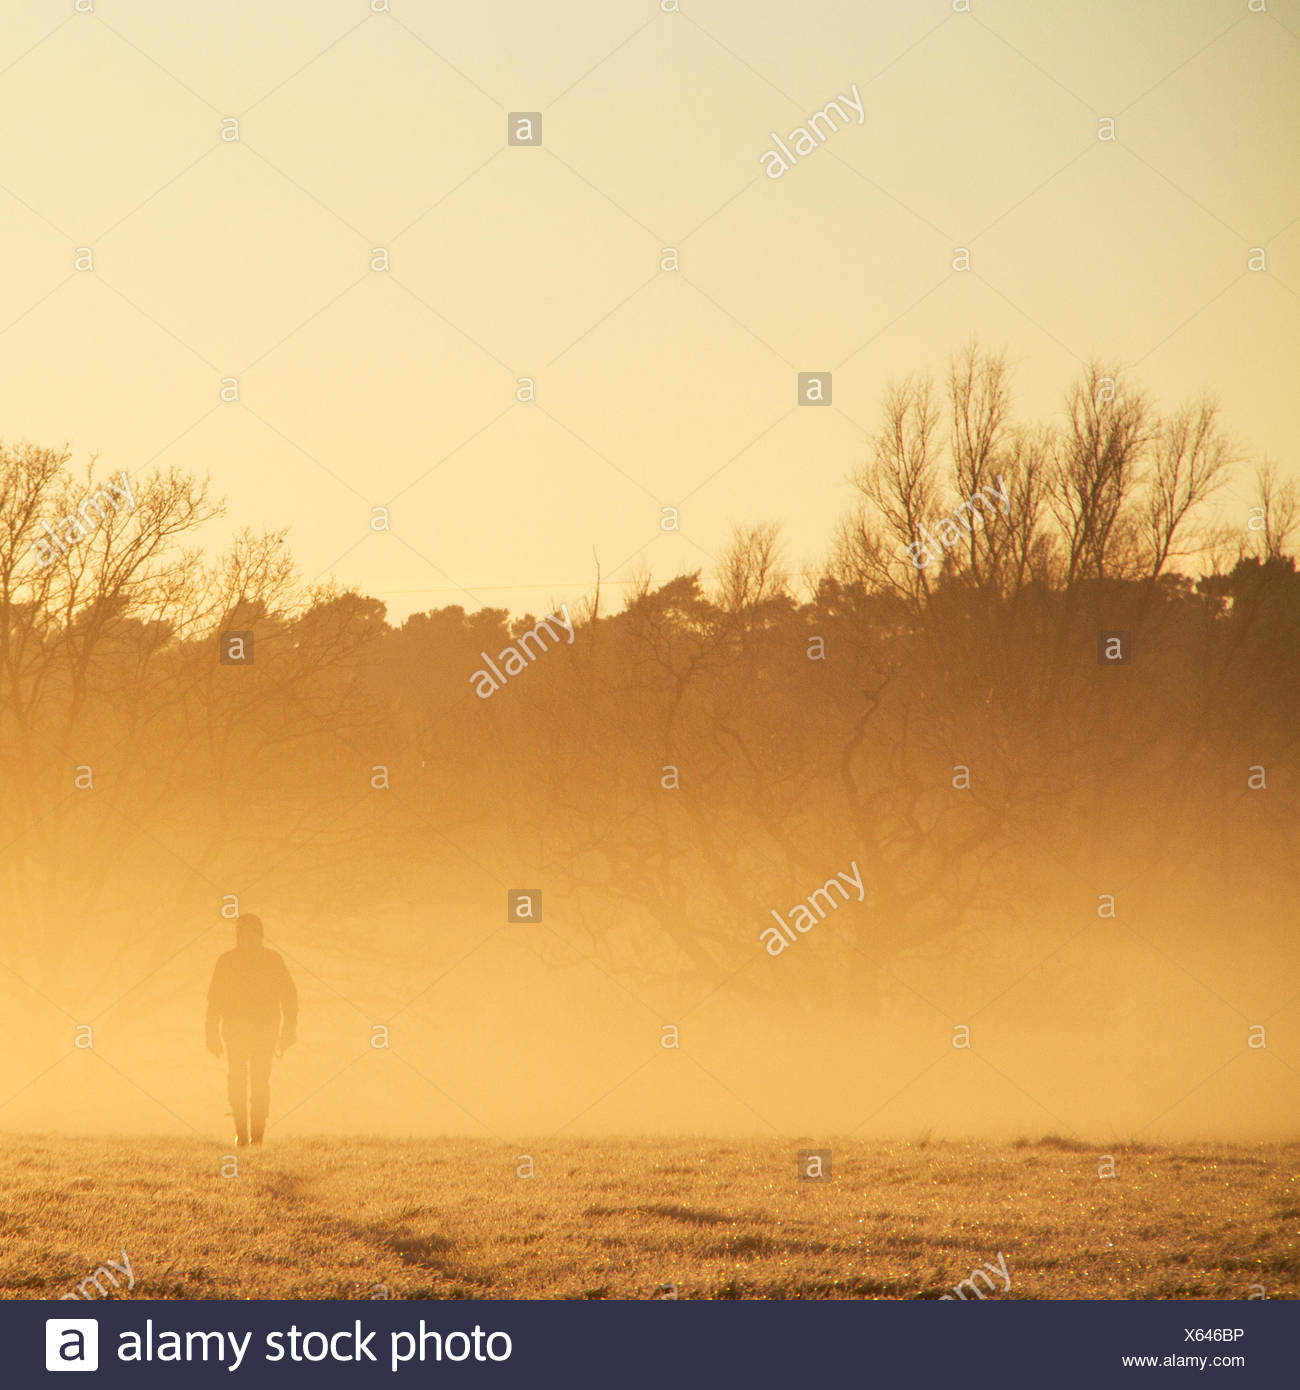 Silhouette of man in field - Stock Image